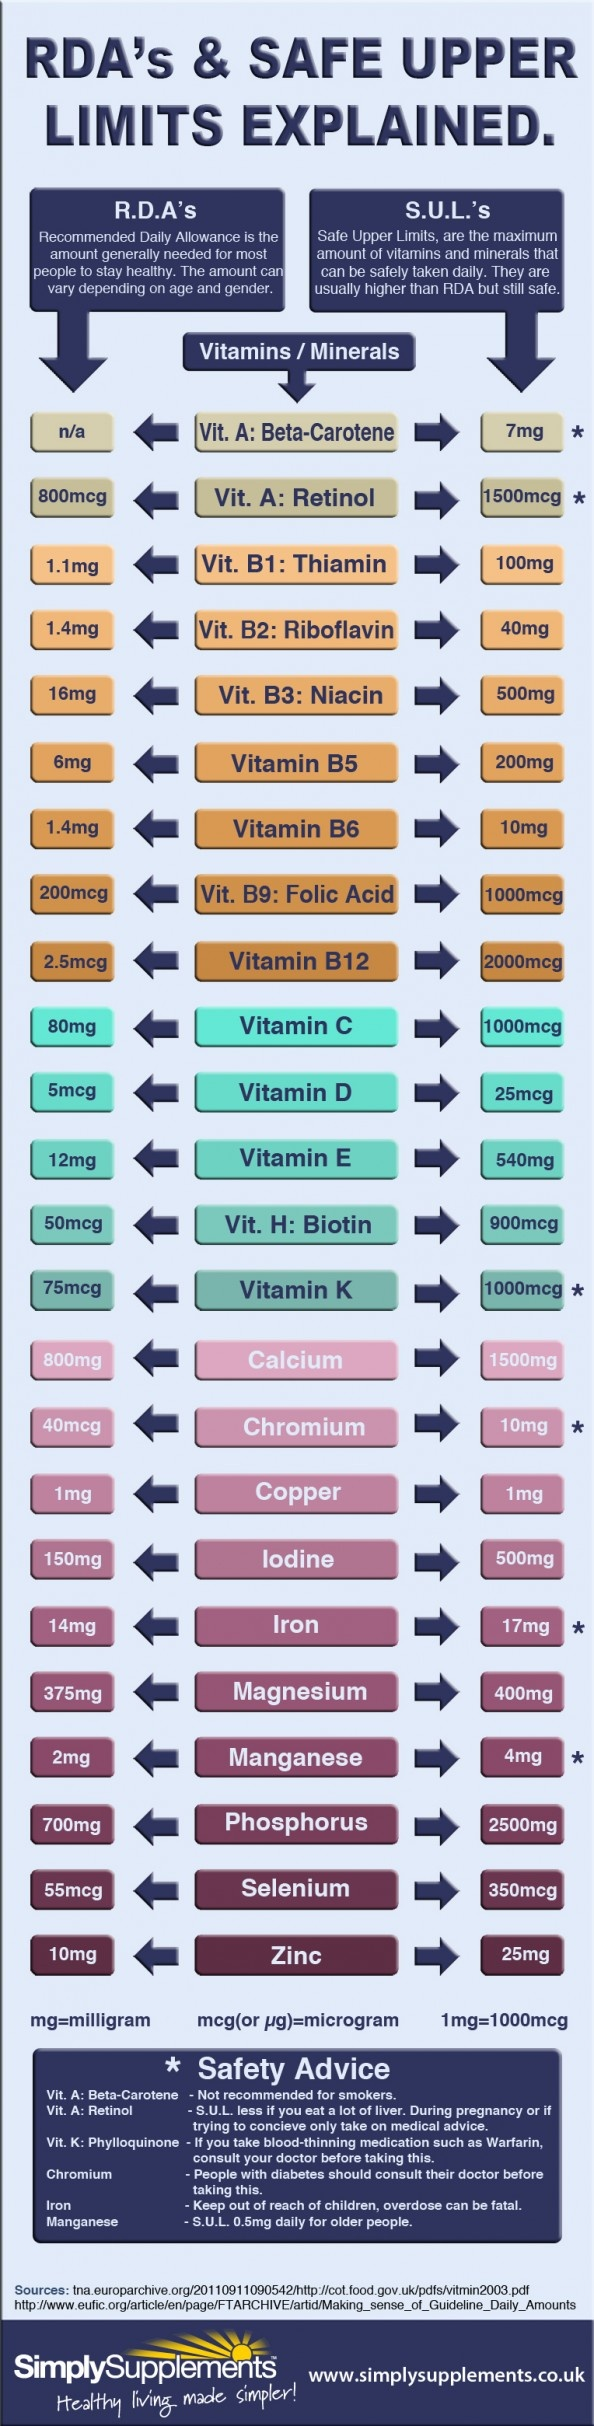 The expert's guide to you recommended daily allowances and safe upper limits of vitamins and nutrients.